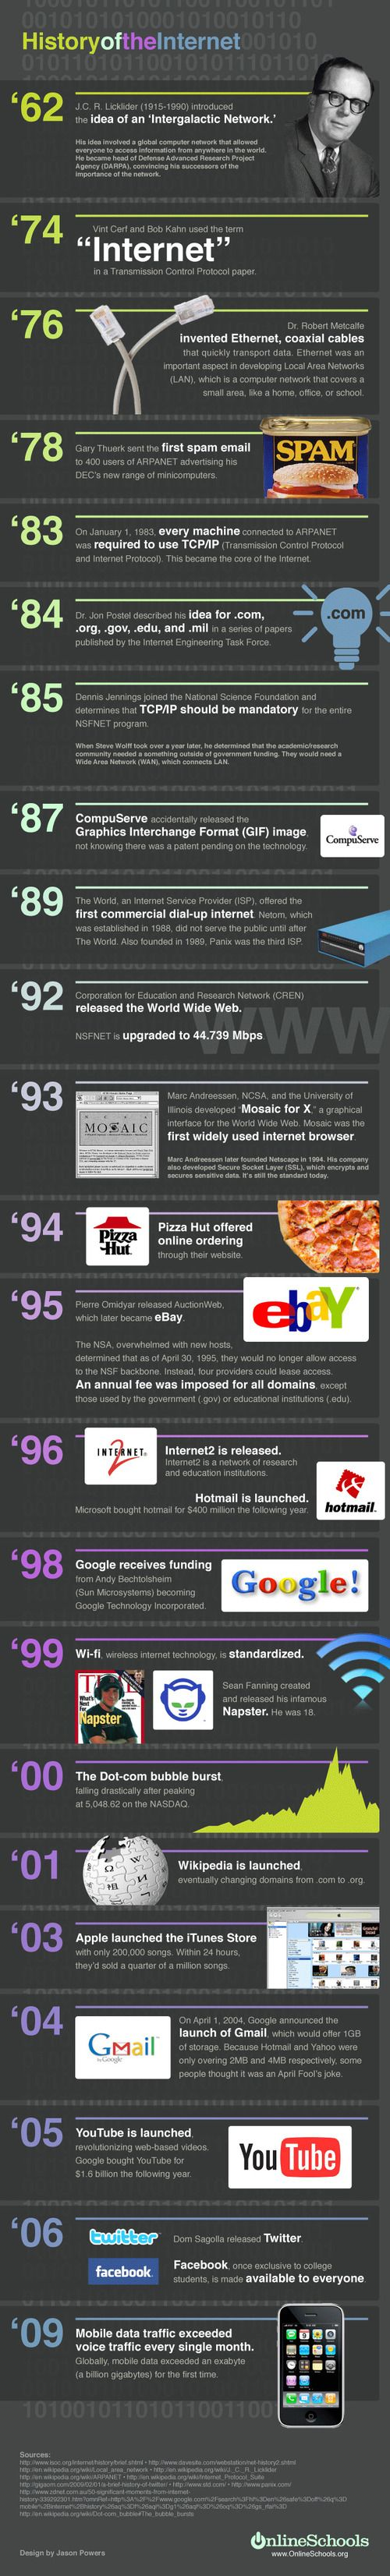 An awesome infographic about the history of internet!: